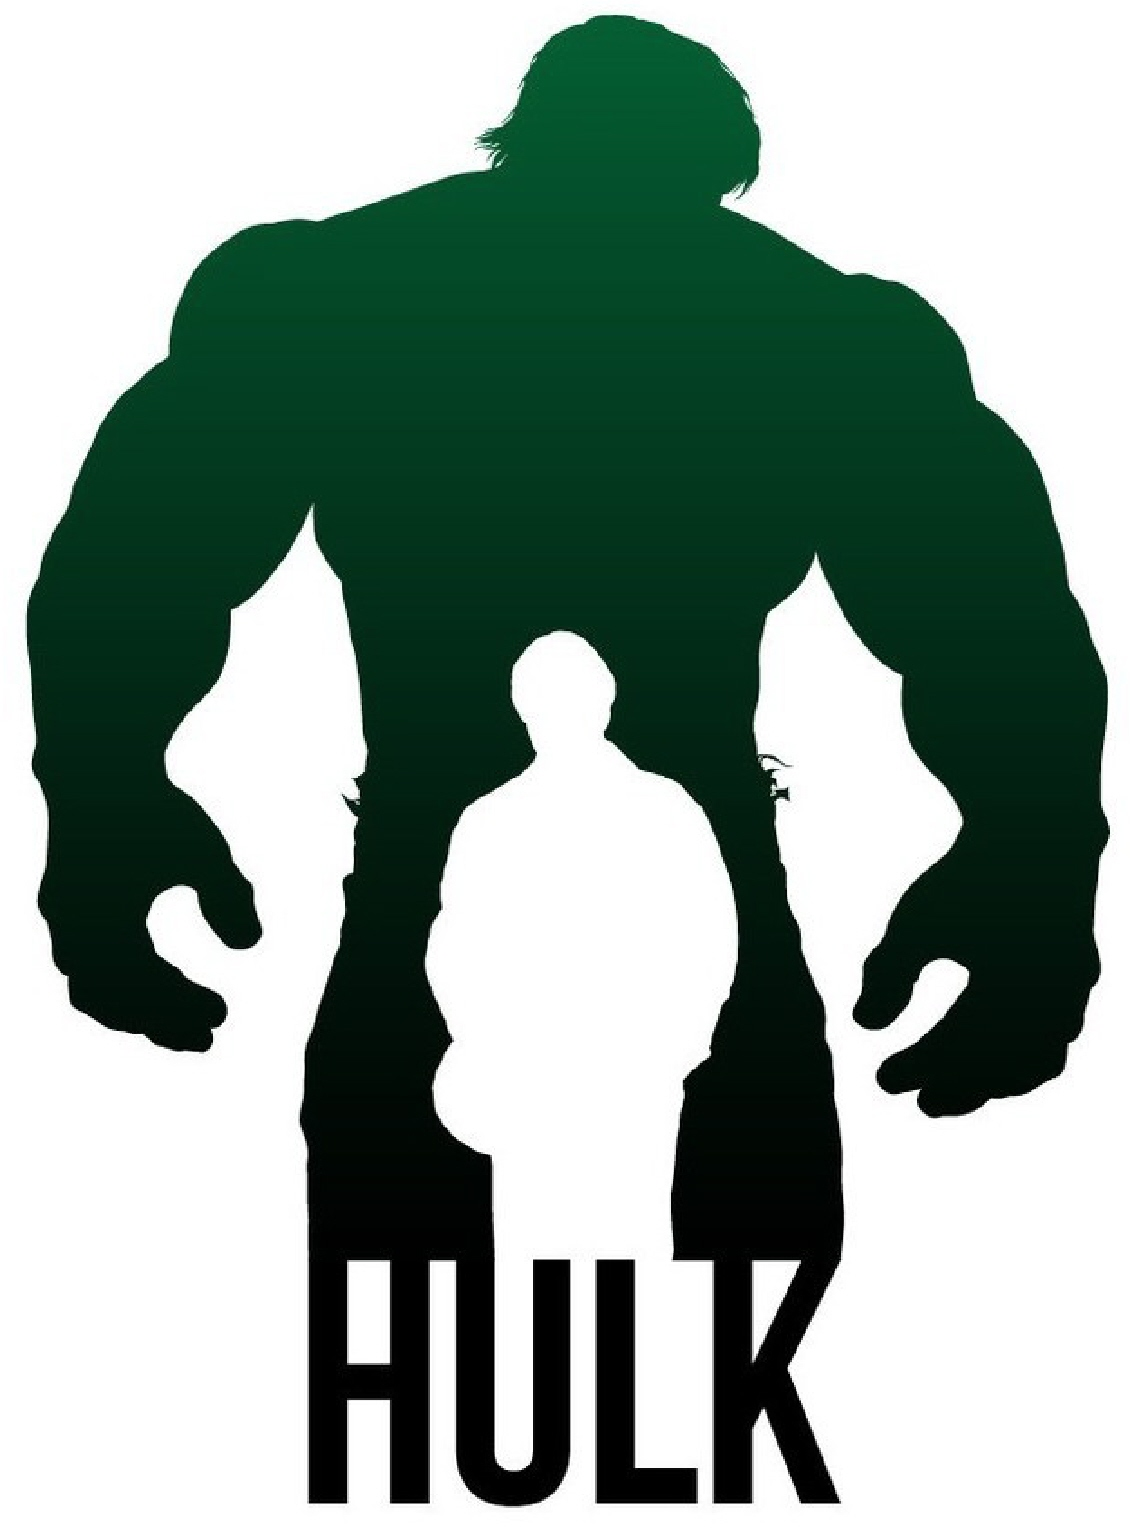 Super Mario Wall Sticker Hulk Decal Bing Images